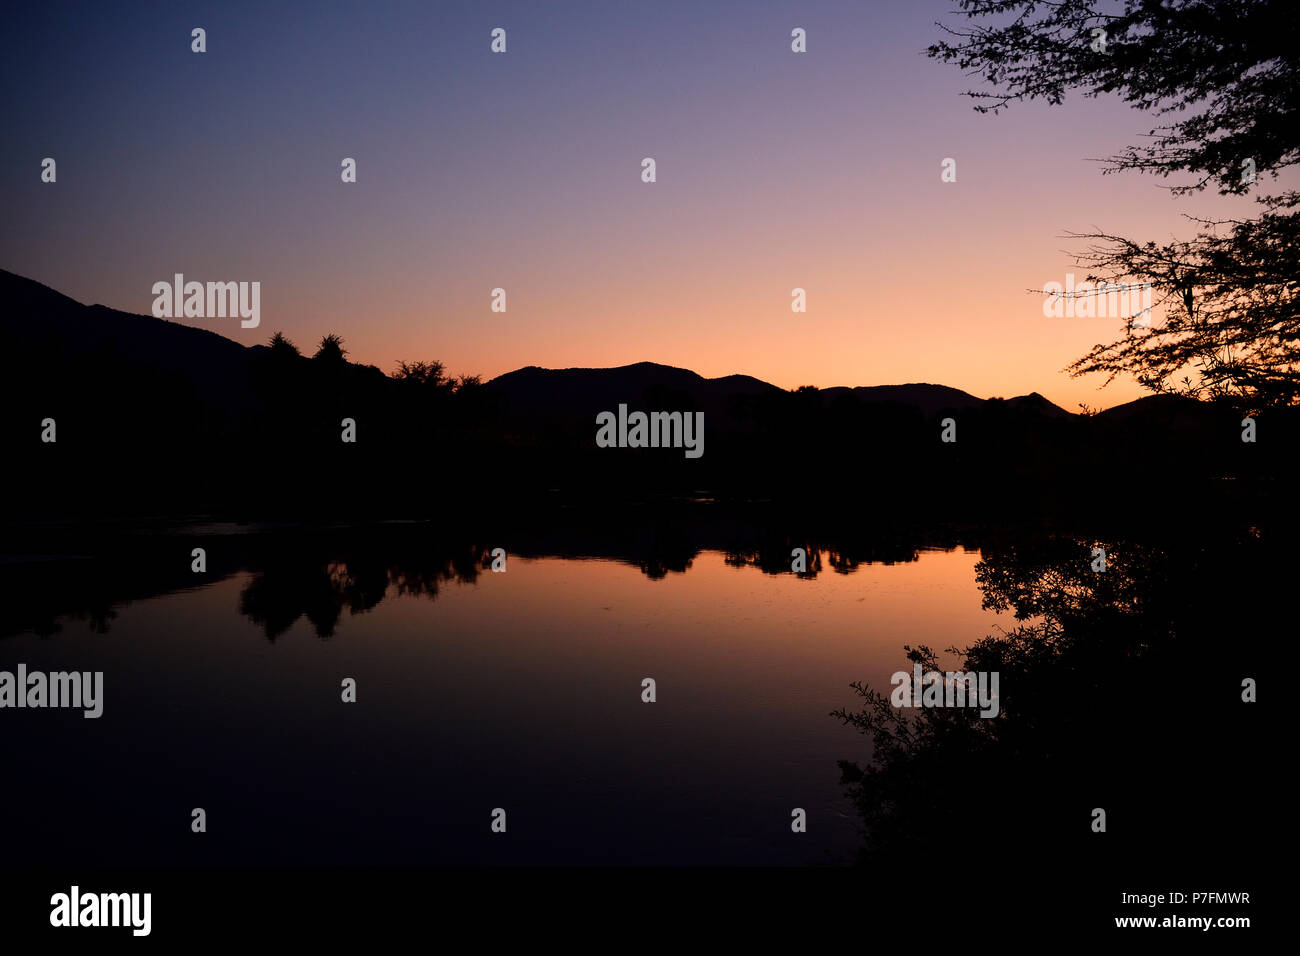 The Kunene River near the Epupa Falls at dawn, Kaokoveld, Namibia - Stock Image